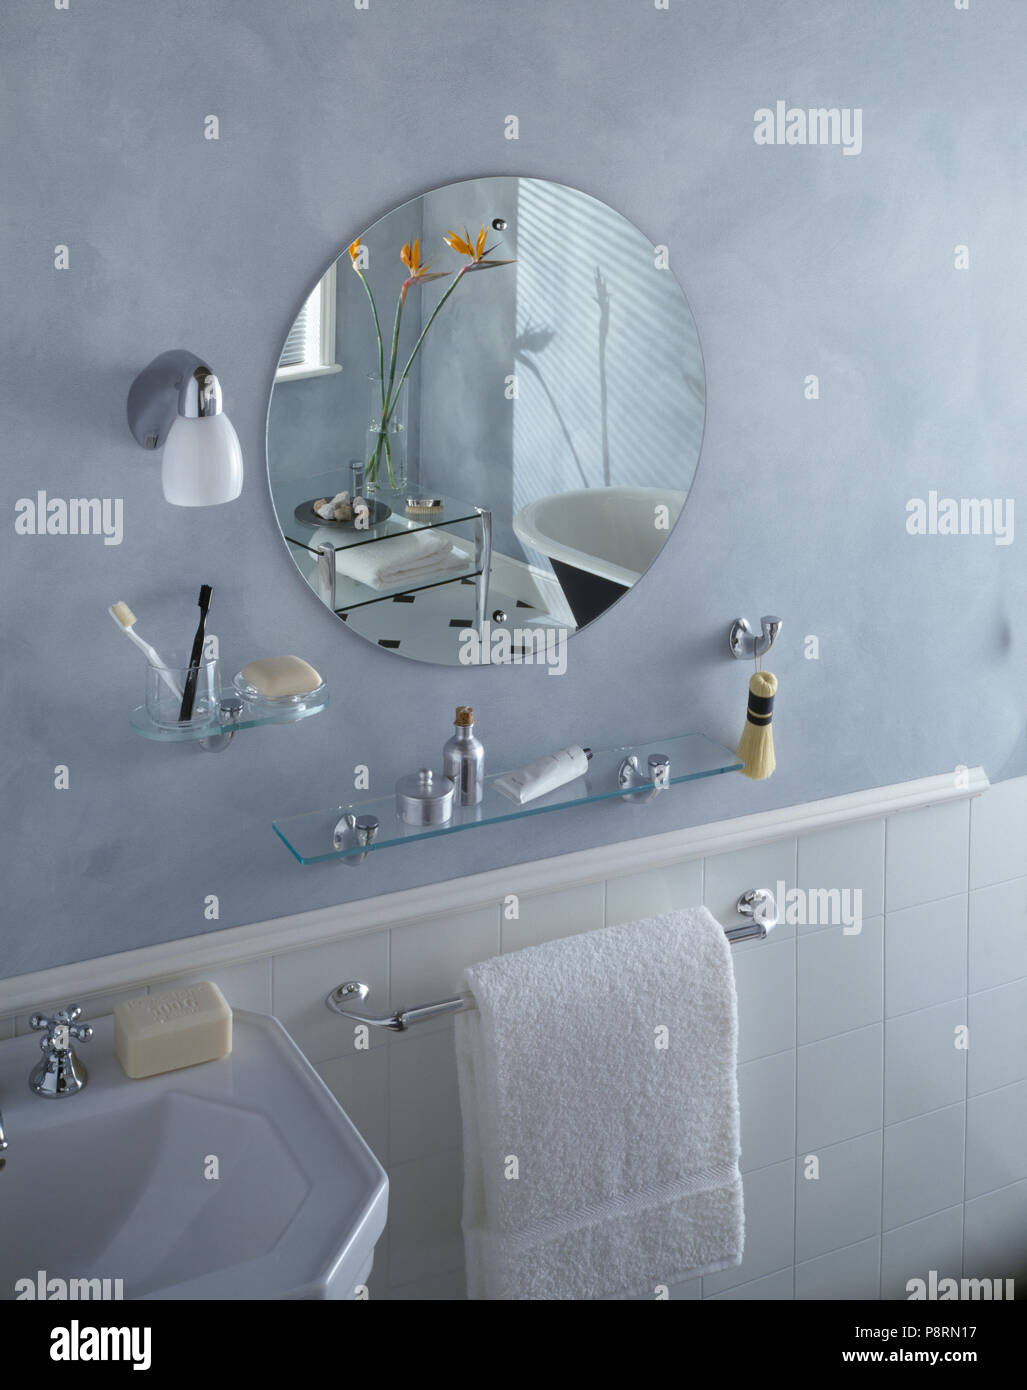 Circular unframed mirror and glass shelves above white towel on rail ...